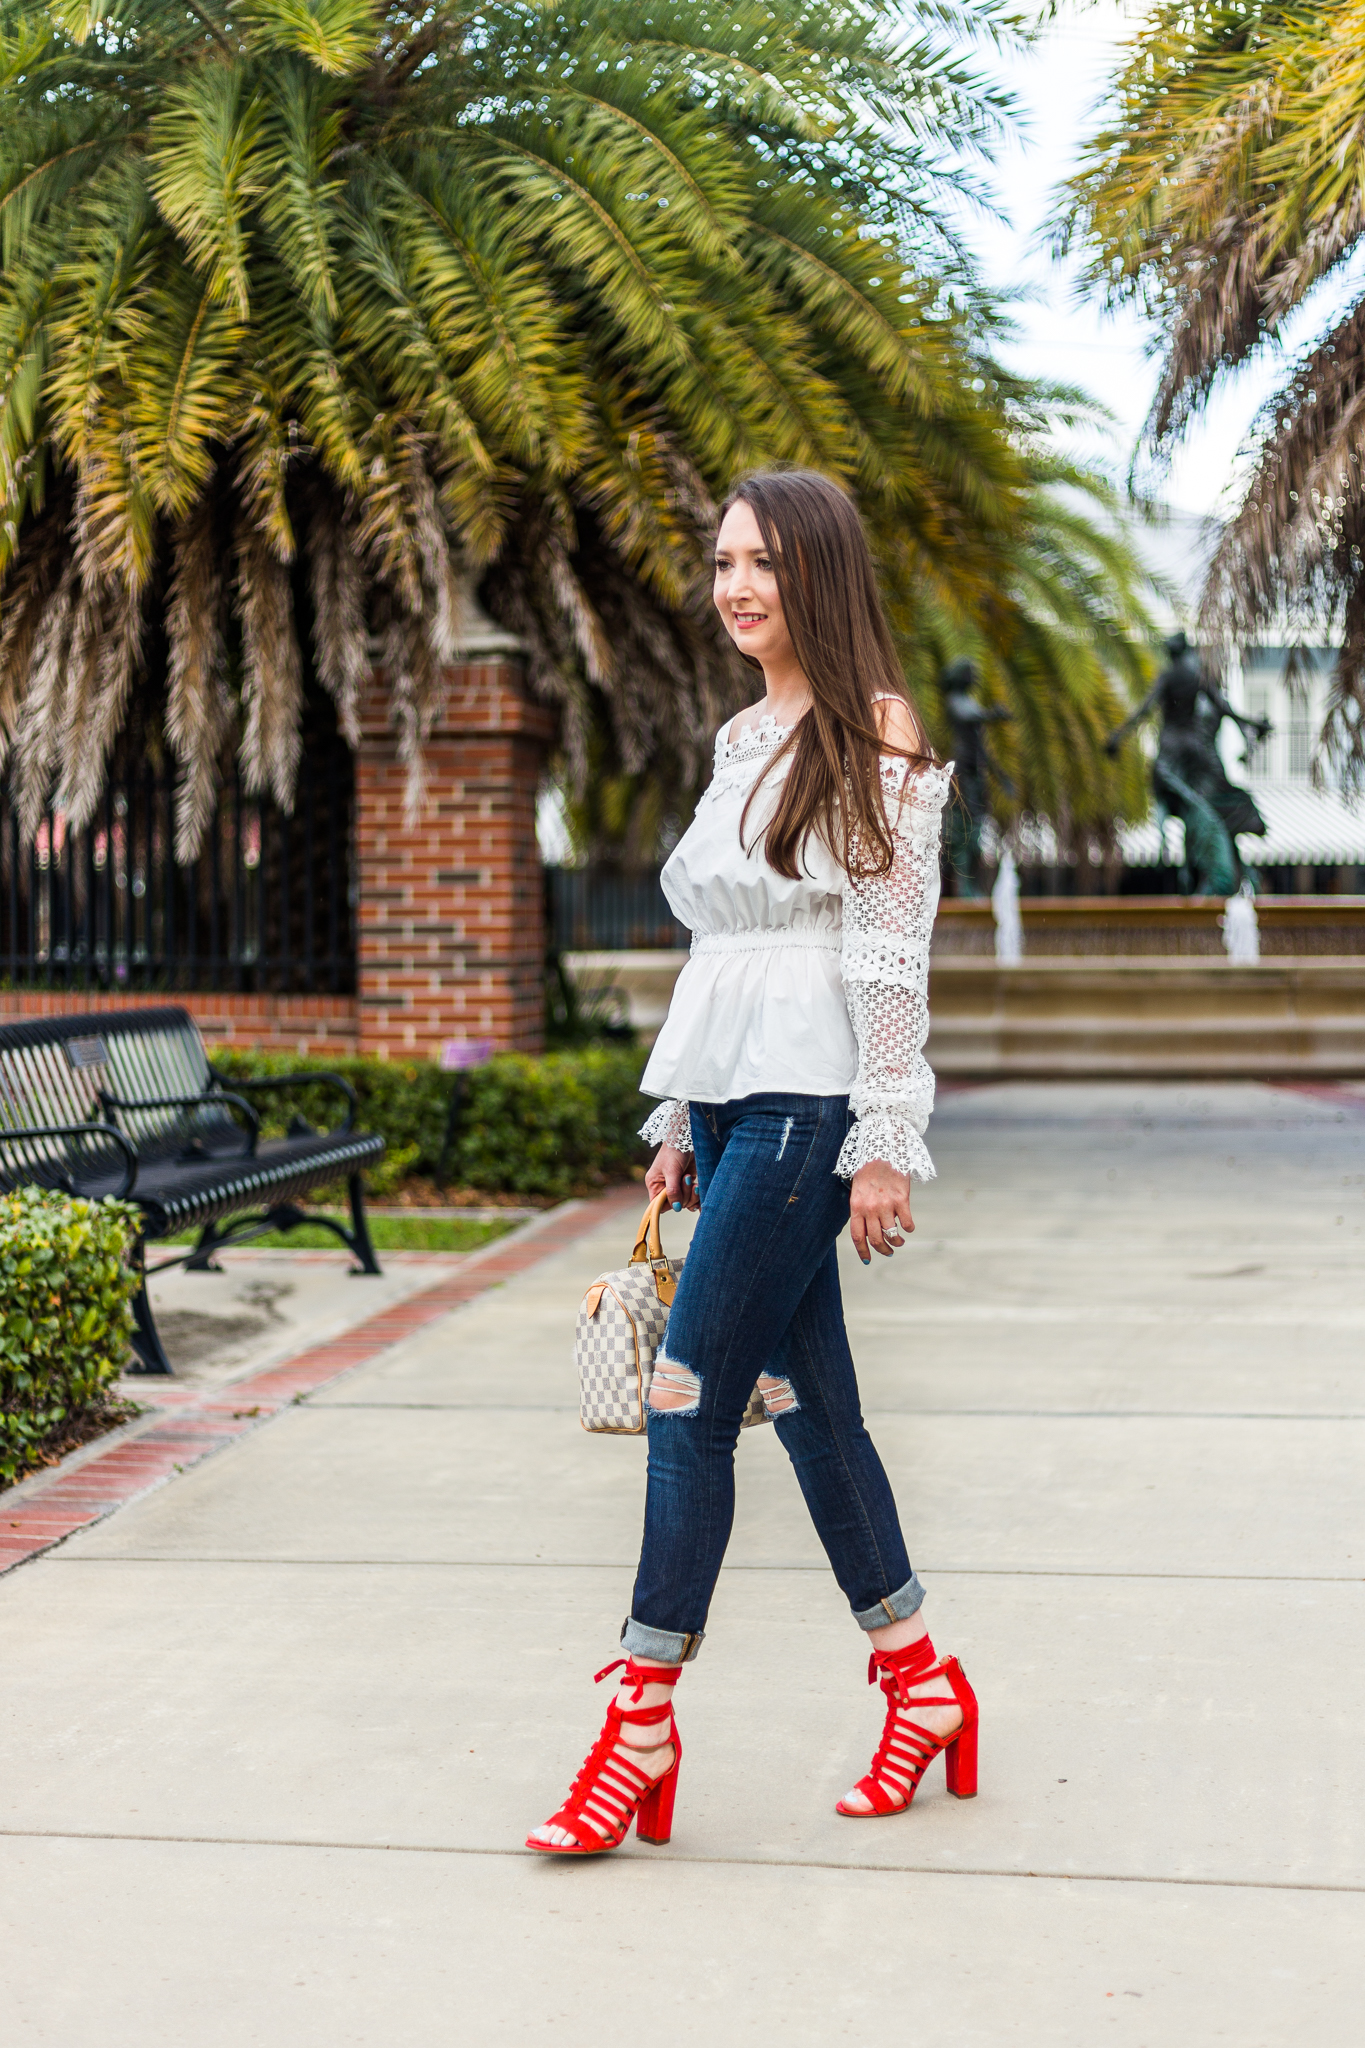 A pop of color with Sam Edelman heels, fashion, red heels, Sam Edelman Yarina sandal, Frame Le skinny de jeanne, Louis Vuitton speedy 25 damier azur, frame denim, casual outfit, Bardot top,